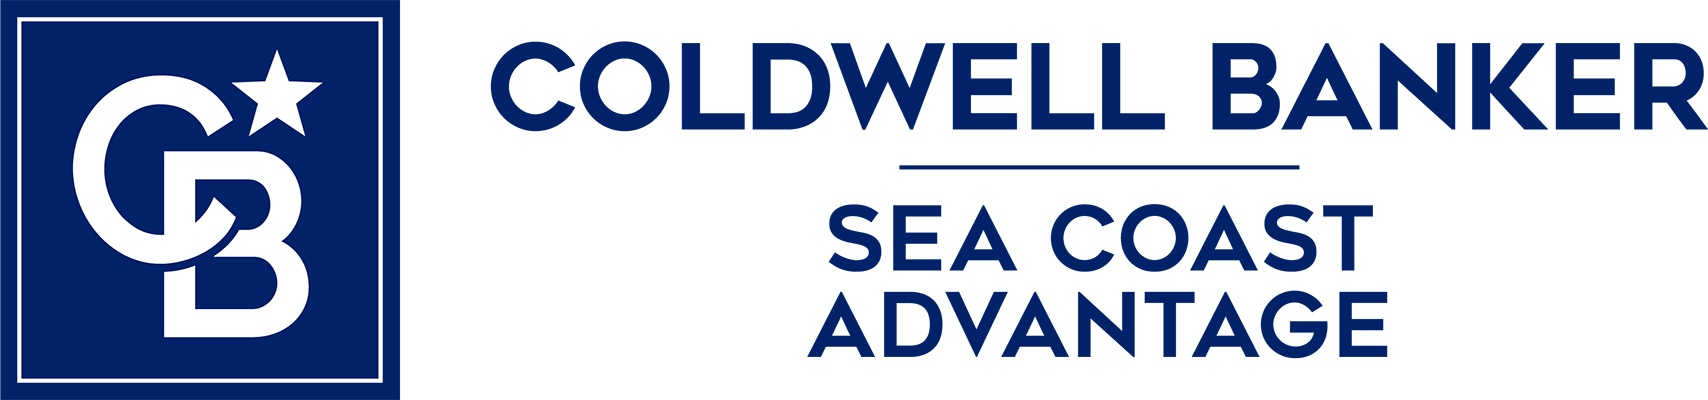 Diane McGowan - Coldwell Banker Sea Coast Advantage Realty